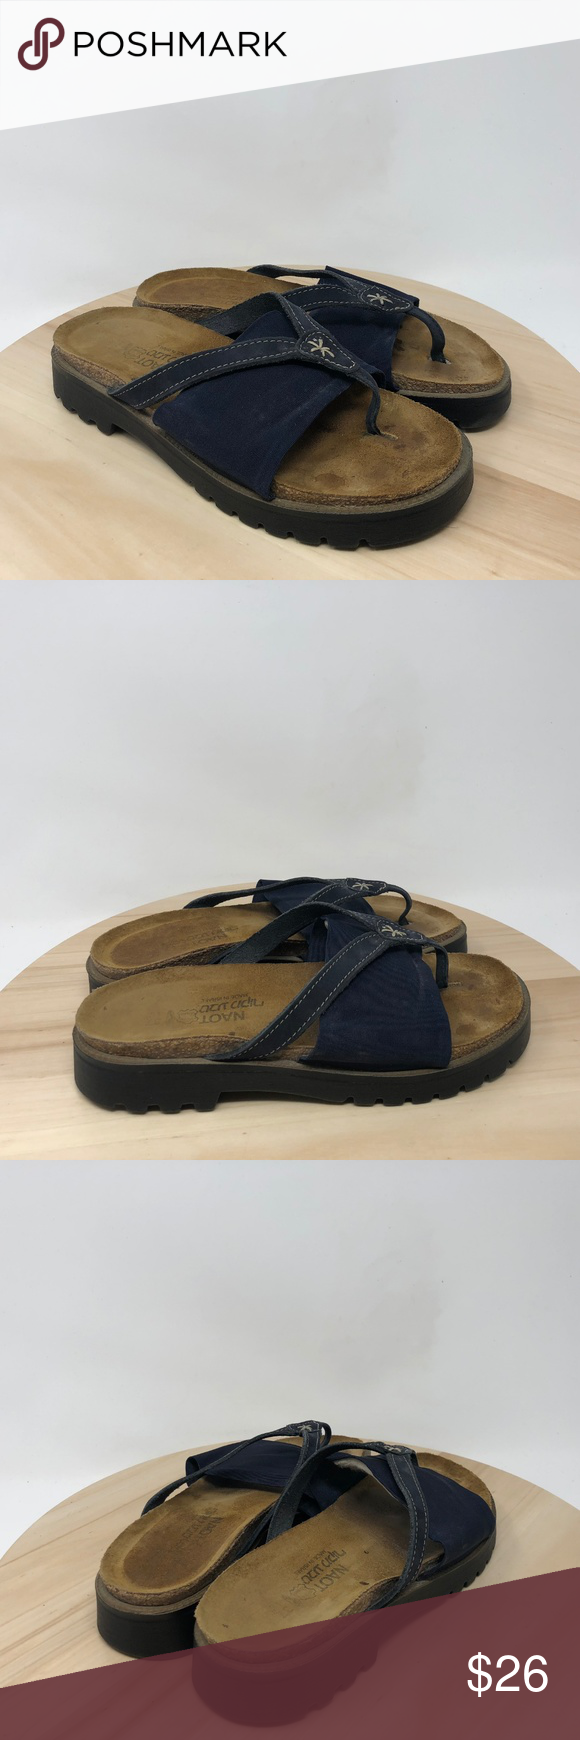 245afa9bb0457 Naot Orion Women s Size 37EUR 6 6.5US Thongs Y15 Naot Orion Israel Made  Women s